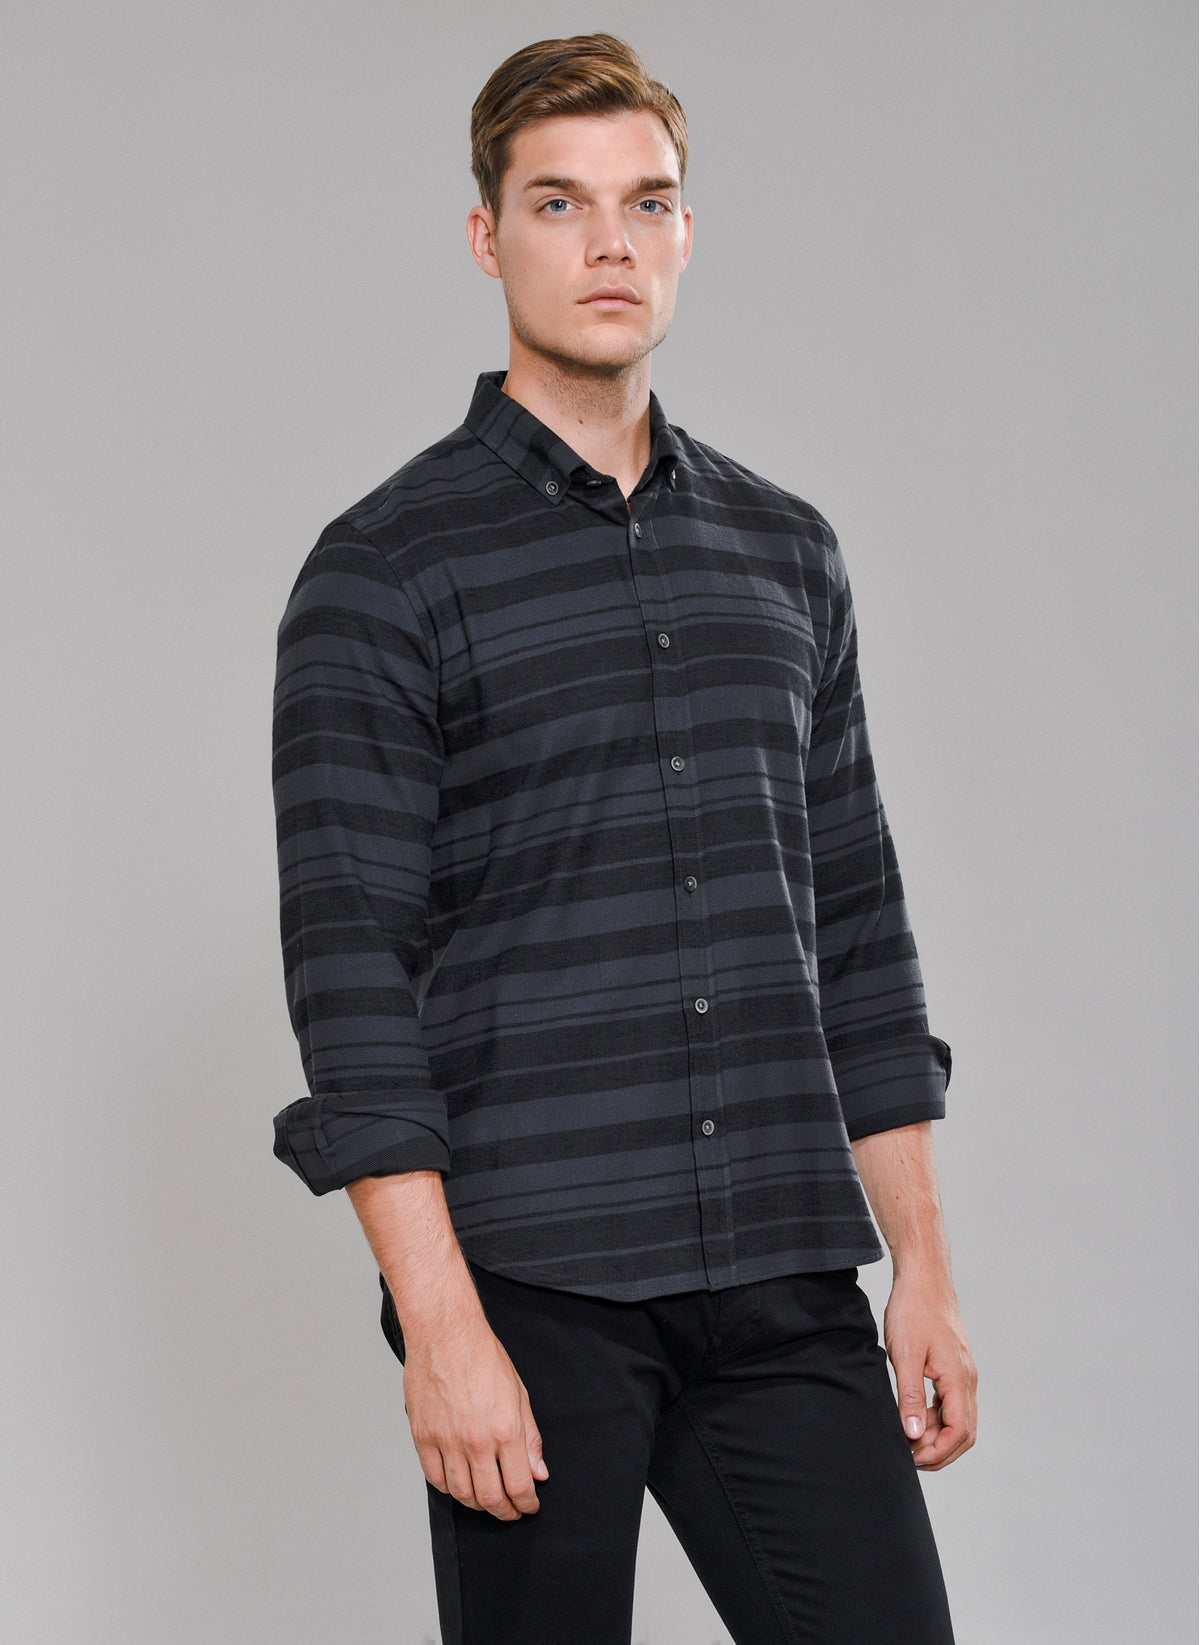 Horizontal Striped Shirt in Black